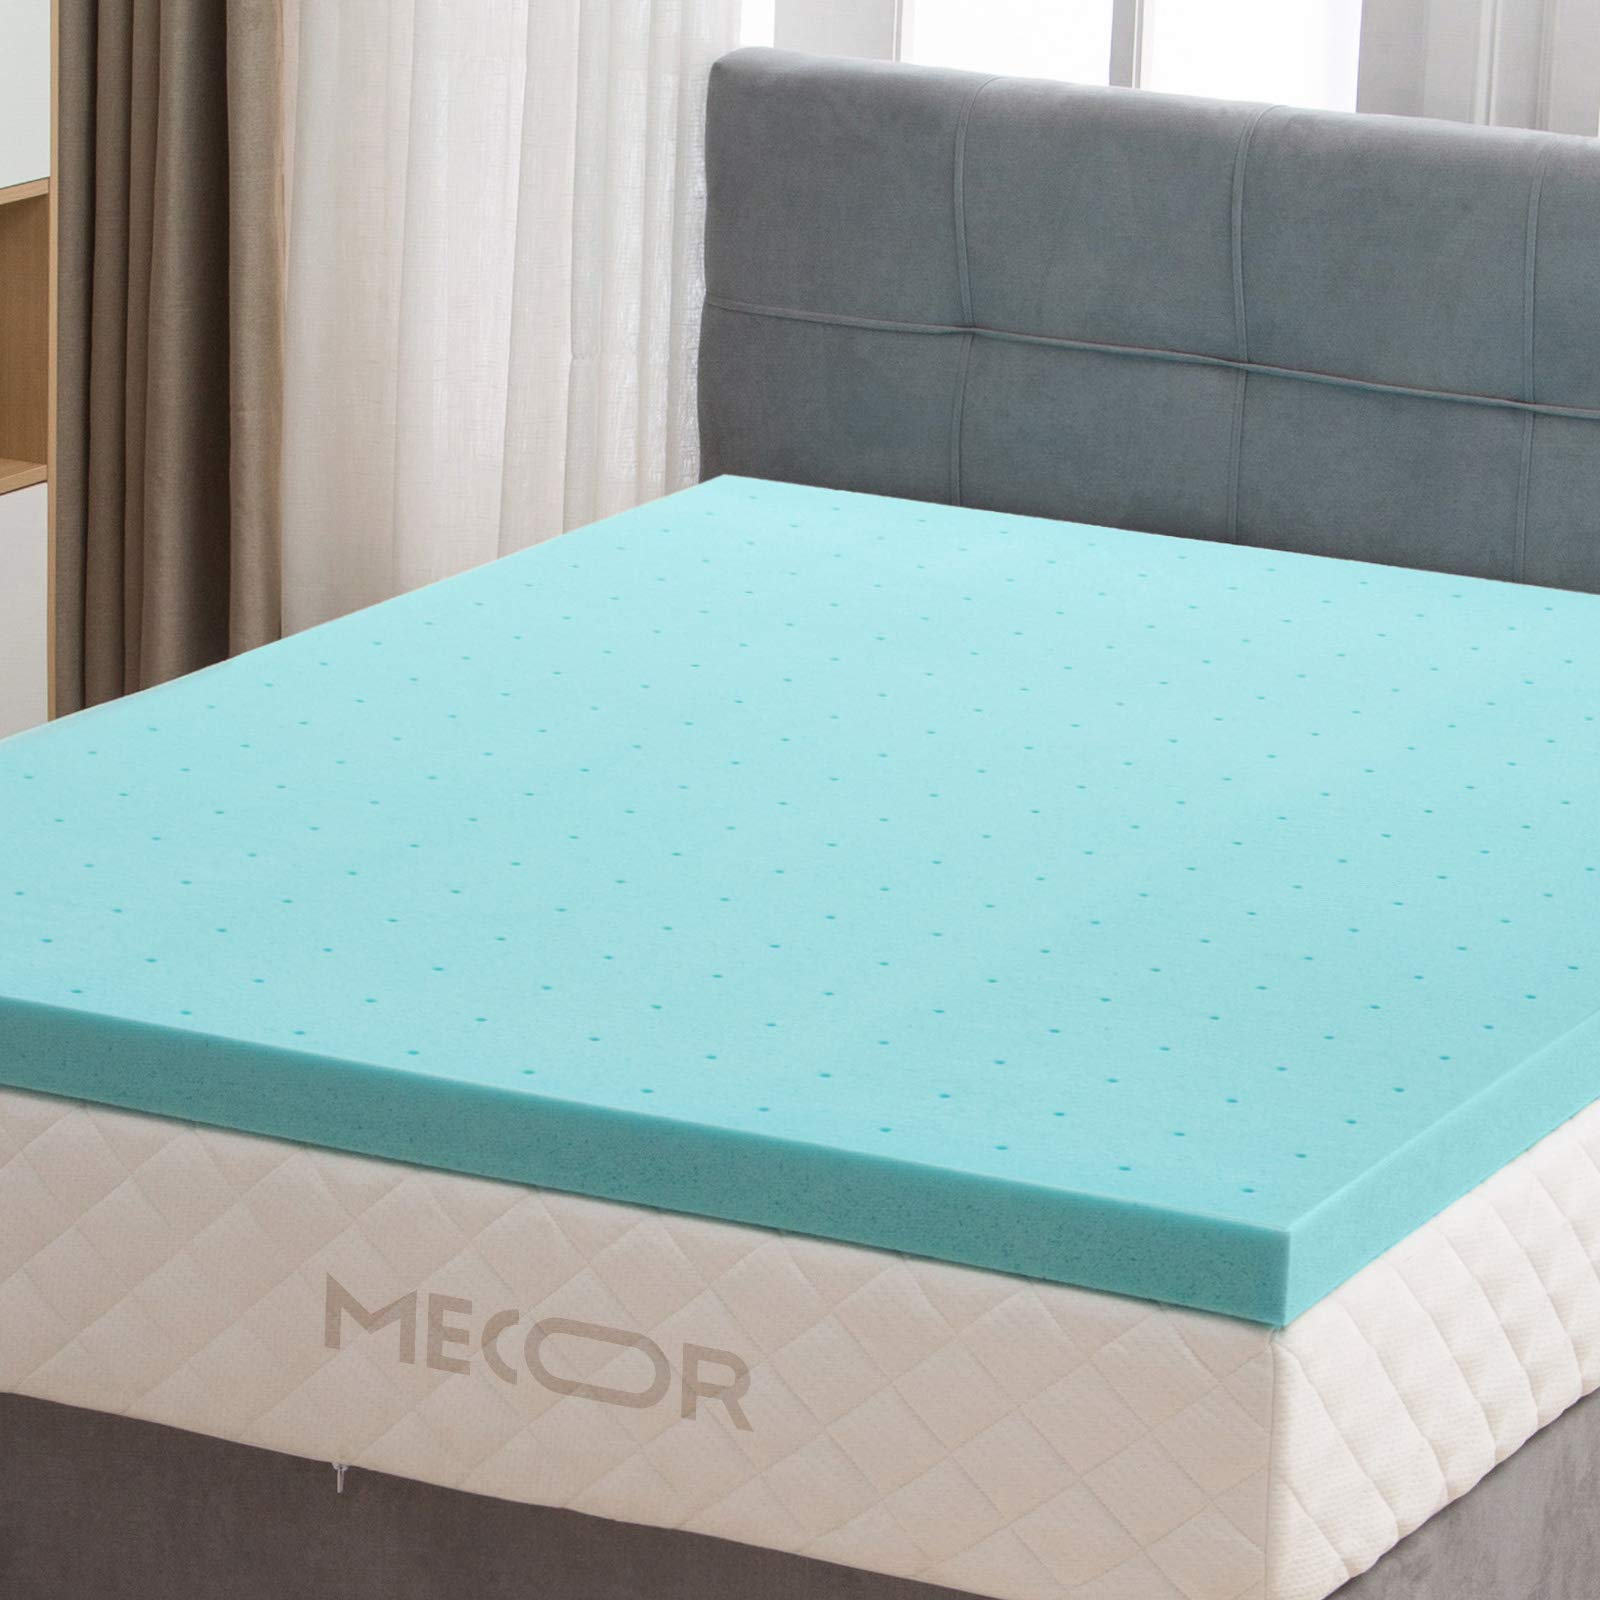 Mecor 4 Inch 4'' 100% Gel Infused Memory Foam Mattress Topper -King Size Ventilated Design Bed Topper- Promotes Airflow - Relieves Pressure Points -CertiPUR-US Certified/Blue